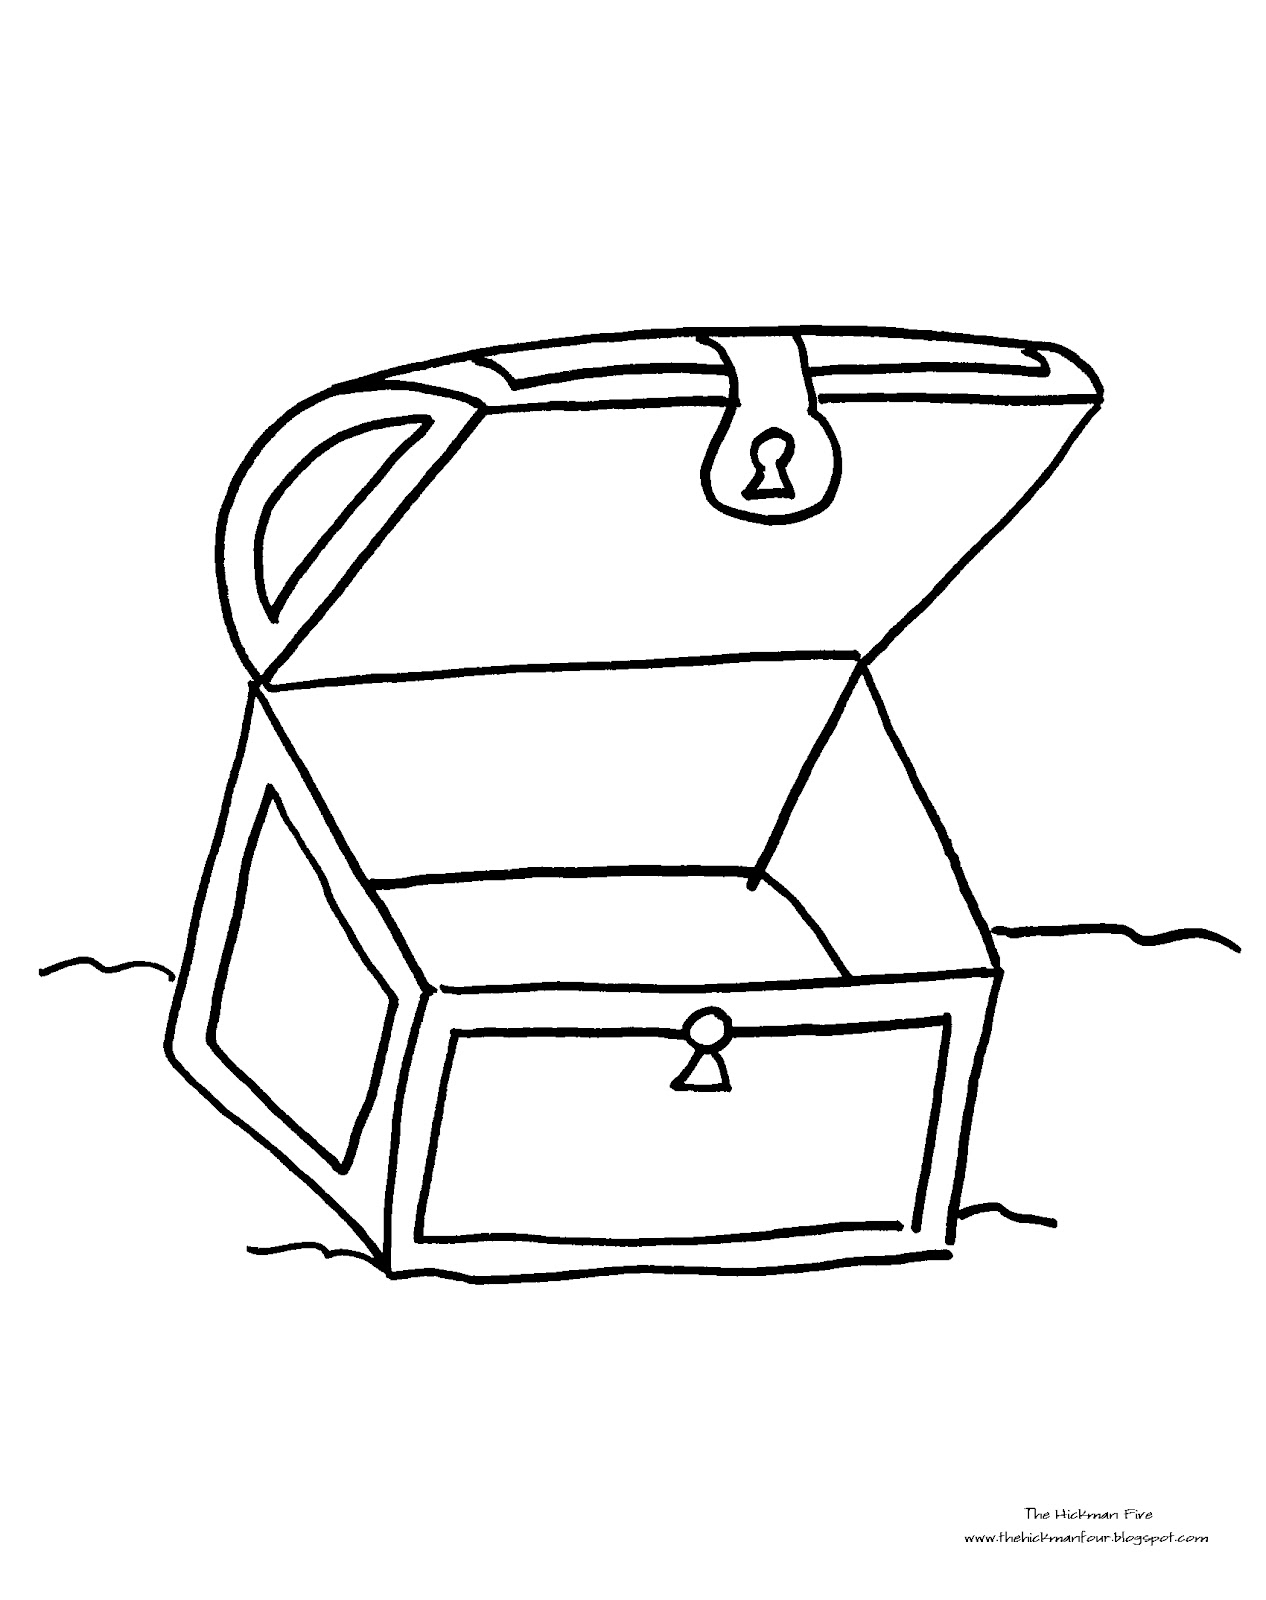 Pirate treasure chests drawing for Treasure coloring pages